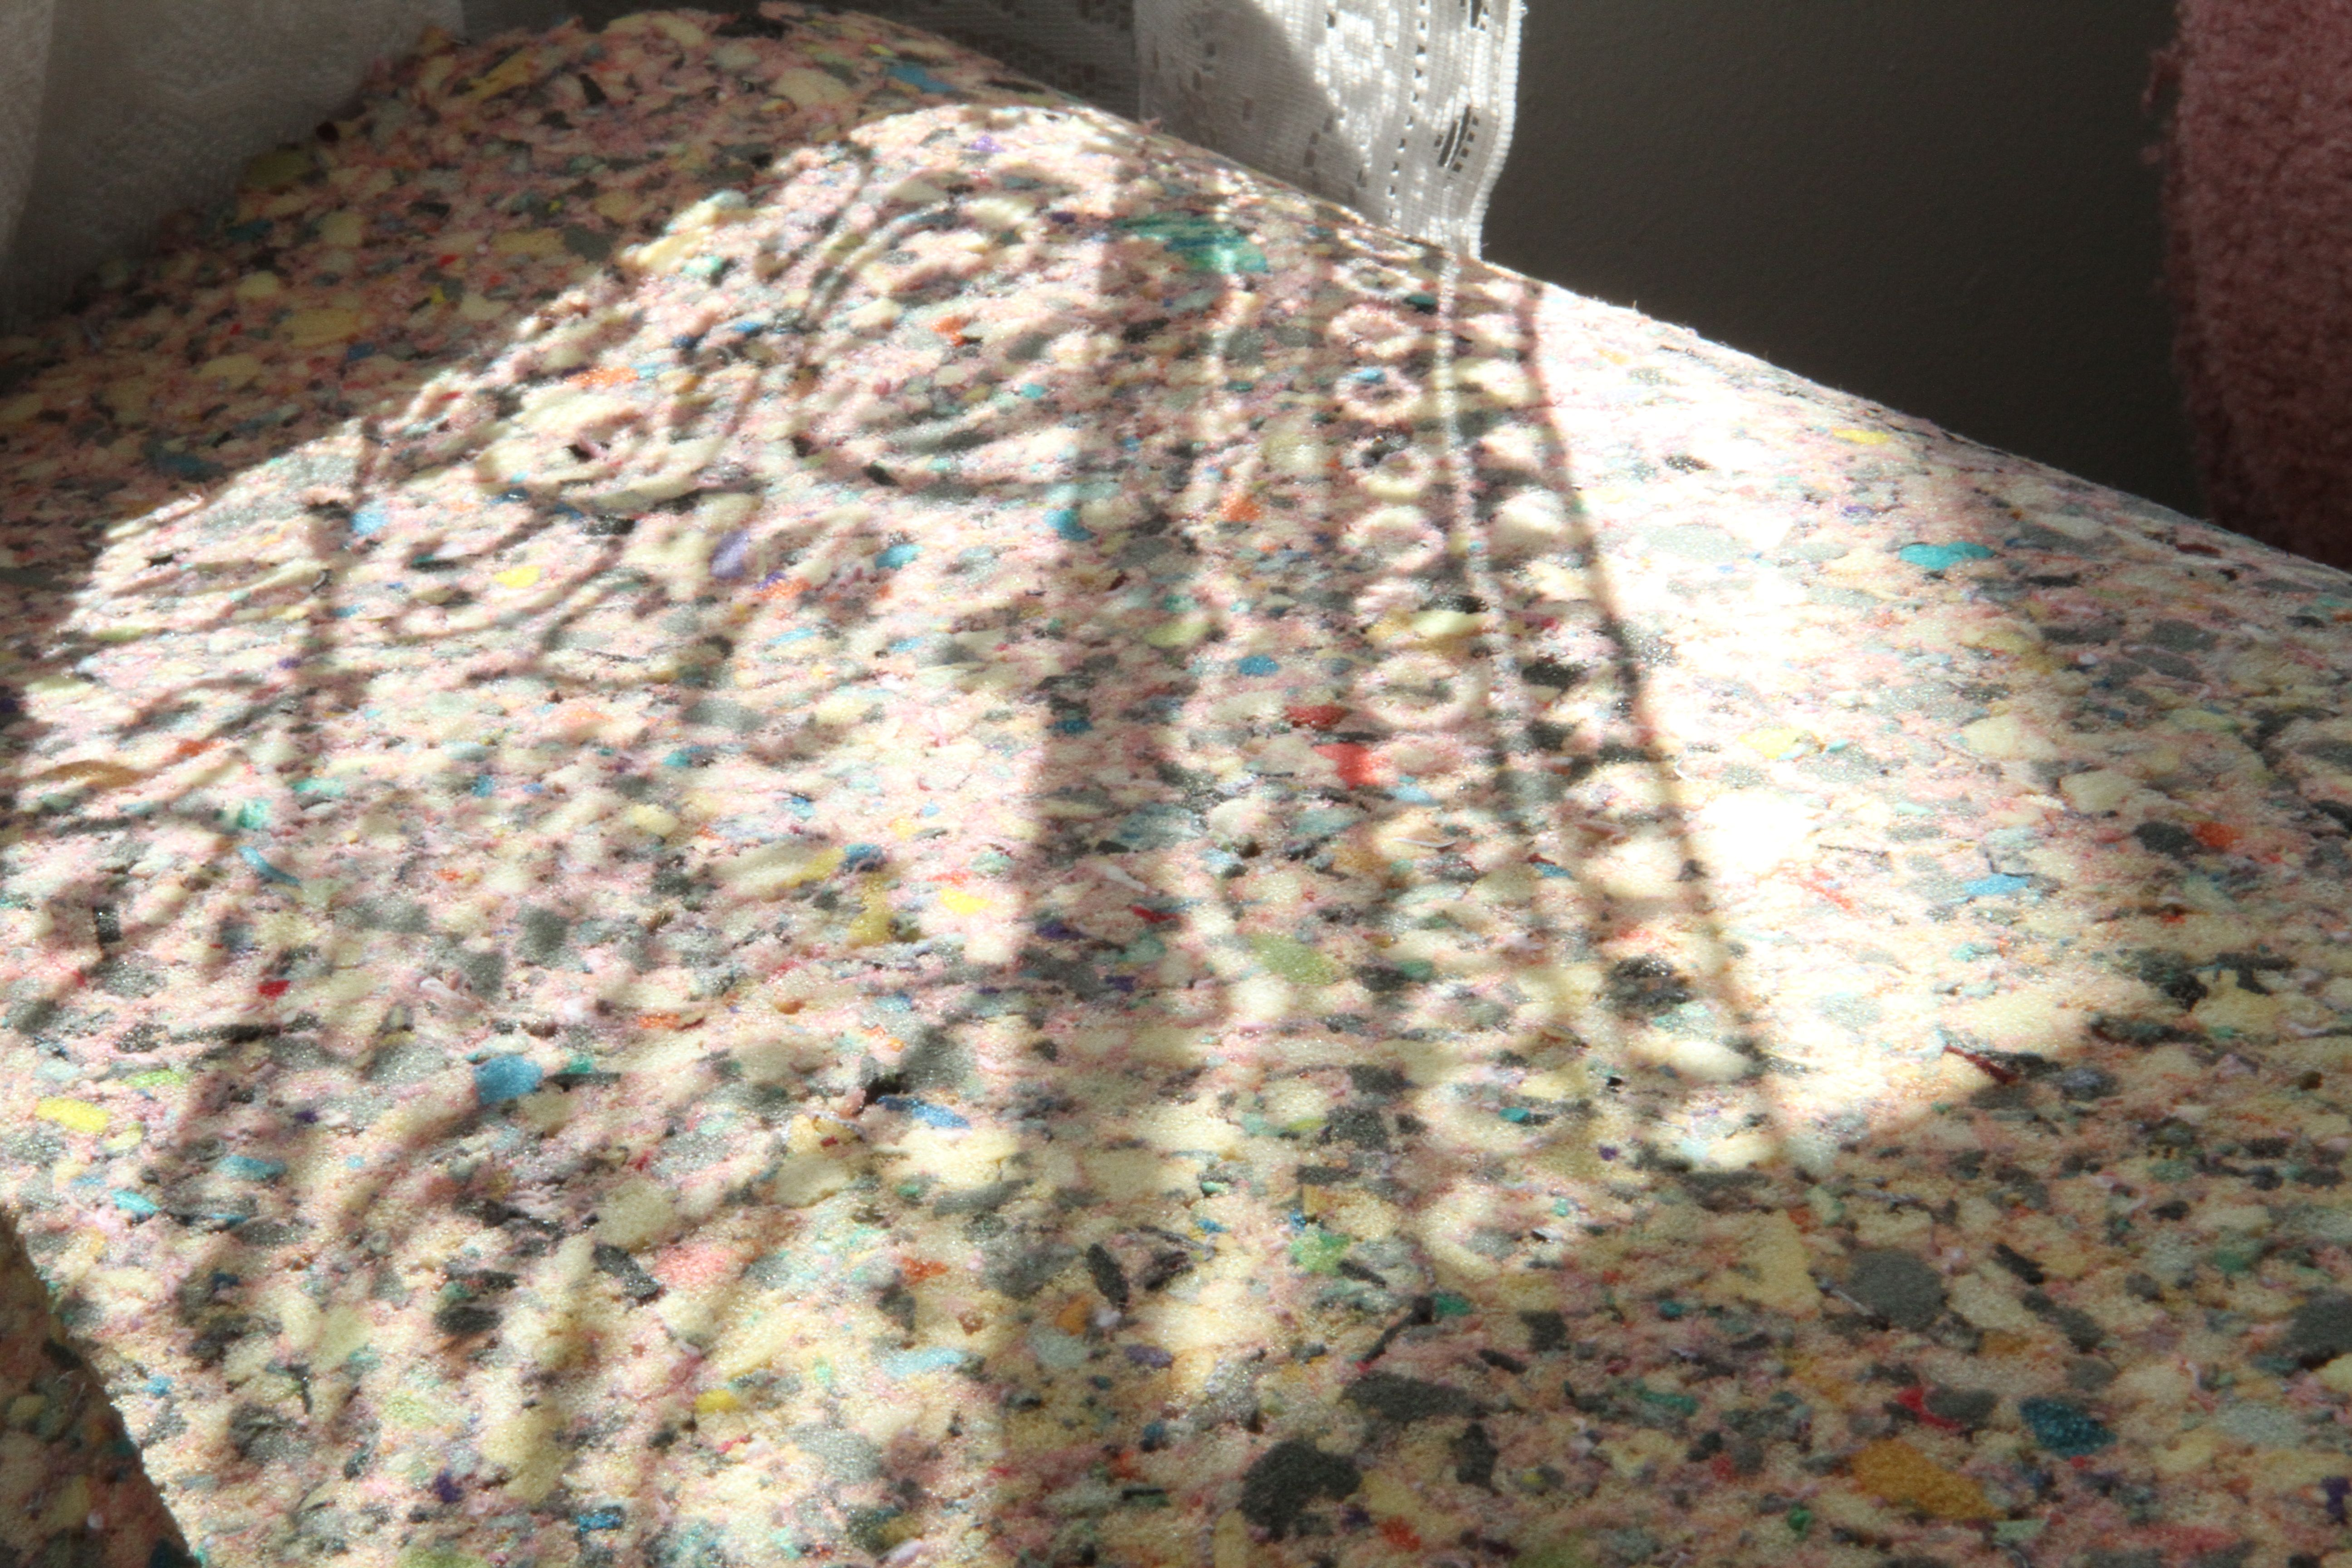 Who would have ever thought that polyester lace and recycled foam carpet pad would make a pretty picture?